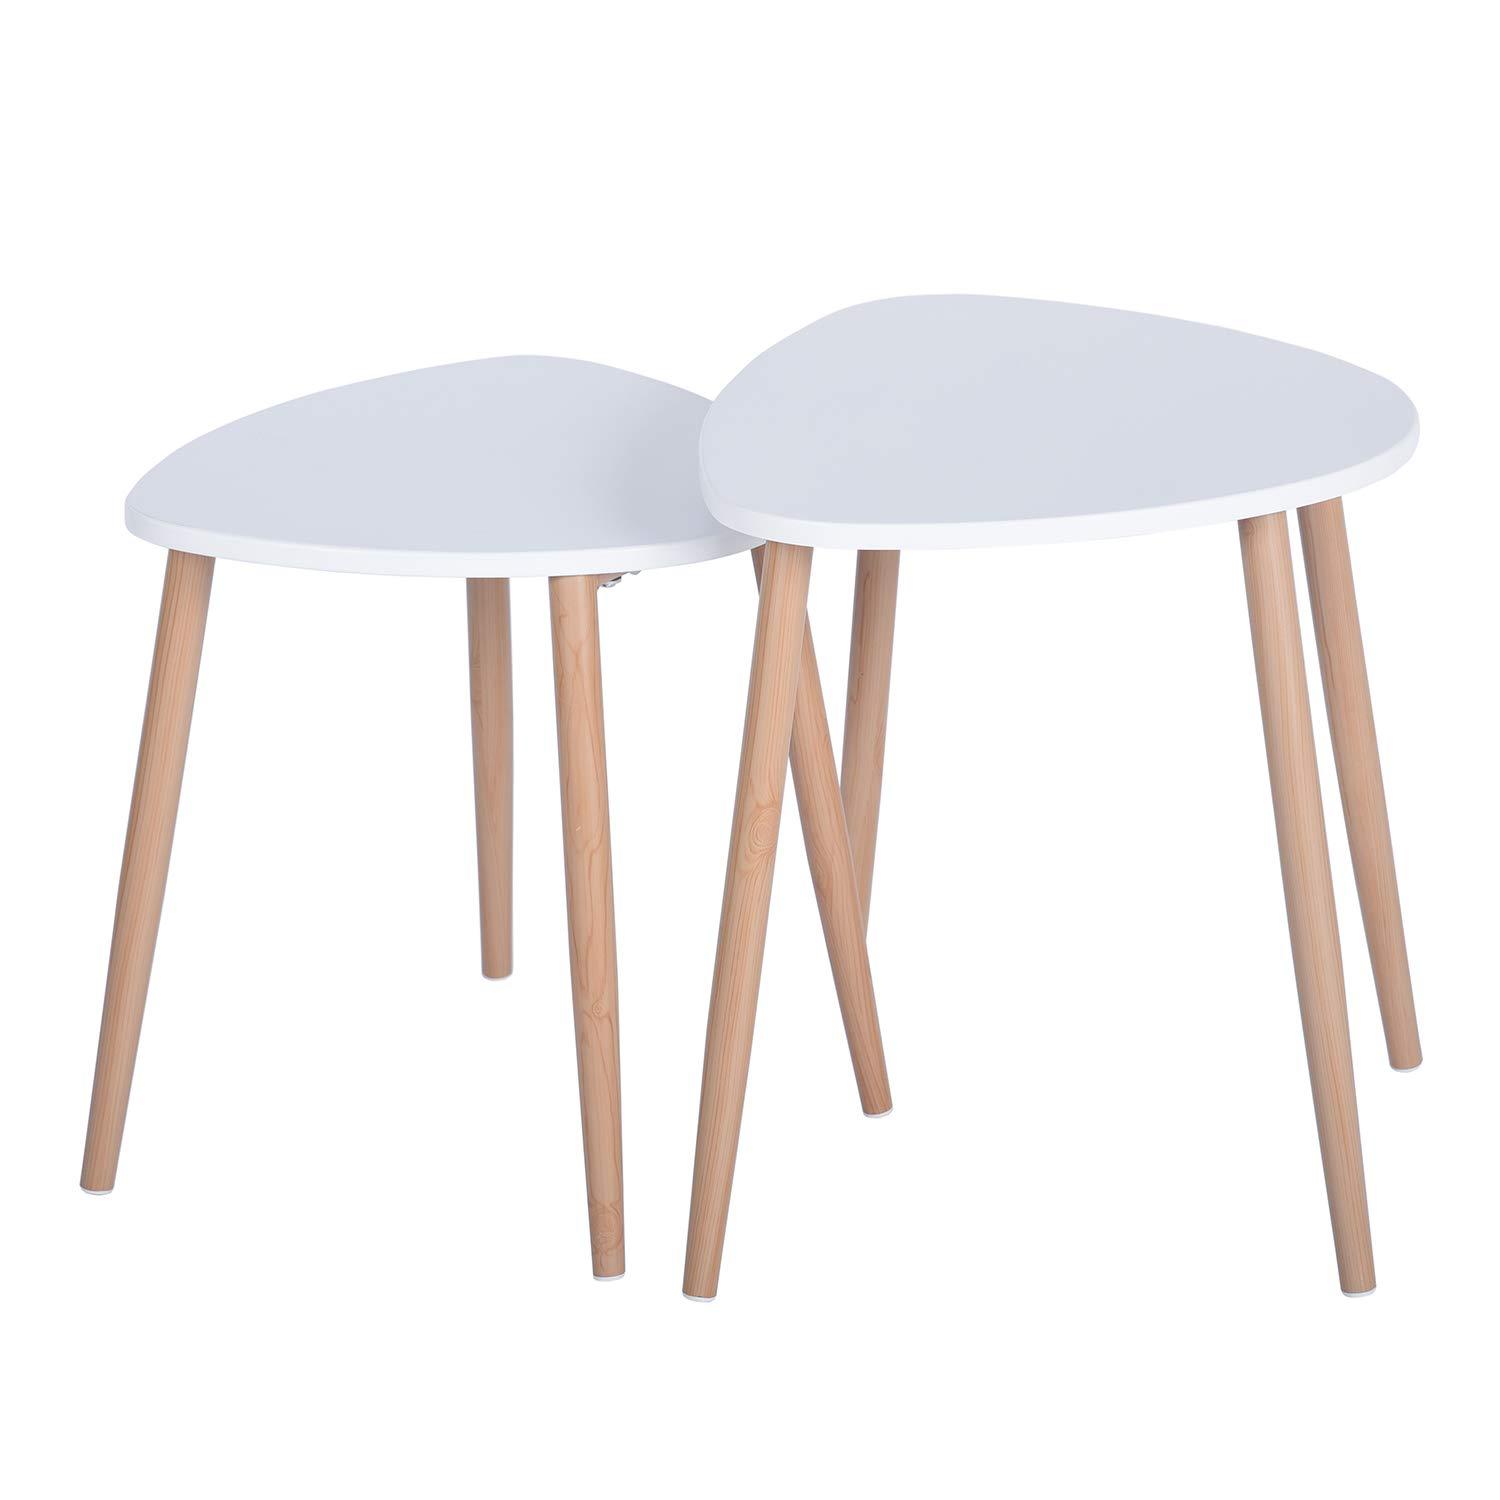 2 Piece Nesting Tables Coffee Tables Round Triangle Side Tables Modern End Tables Occasional Tea Tables Nesting Tables For Balcony And Living Room Set Of 2 White Round Legs Buy Online In